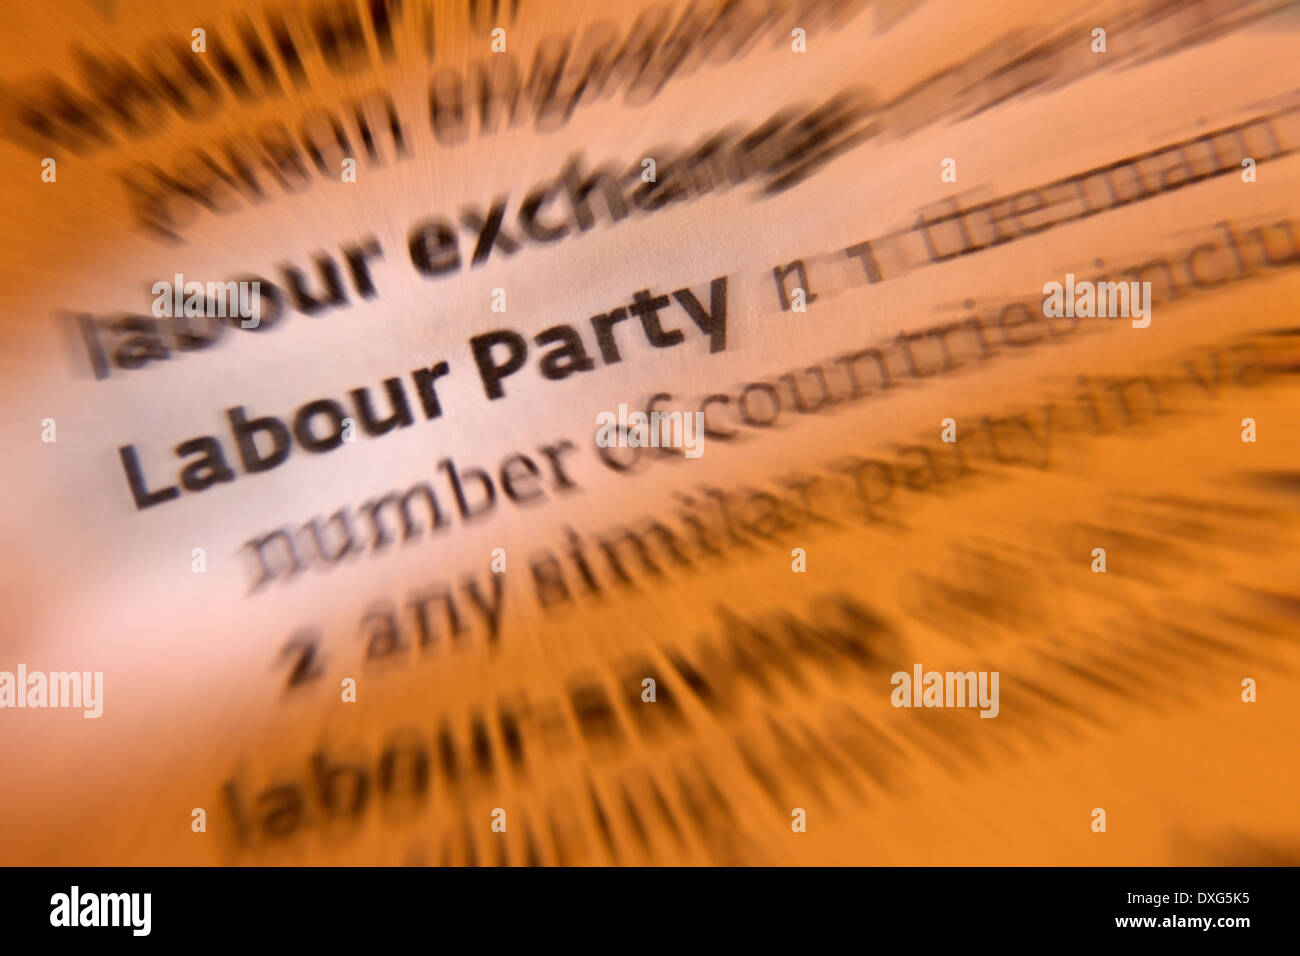 The Labour Party is a major left-of-center British political party - Stock Image